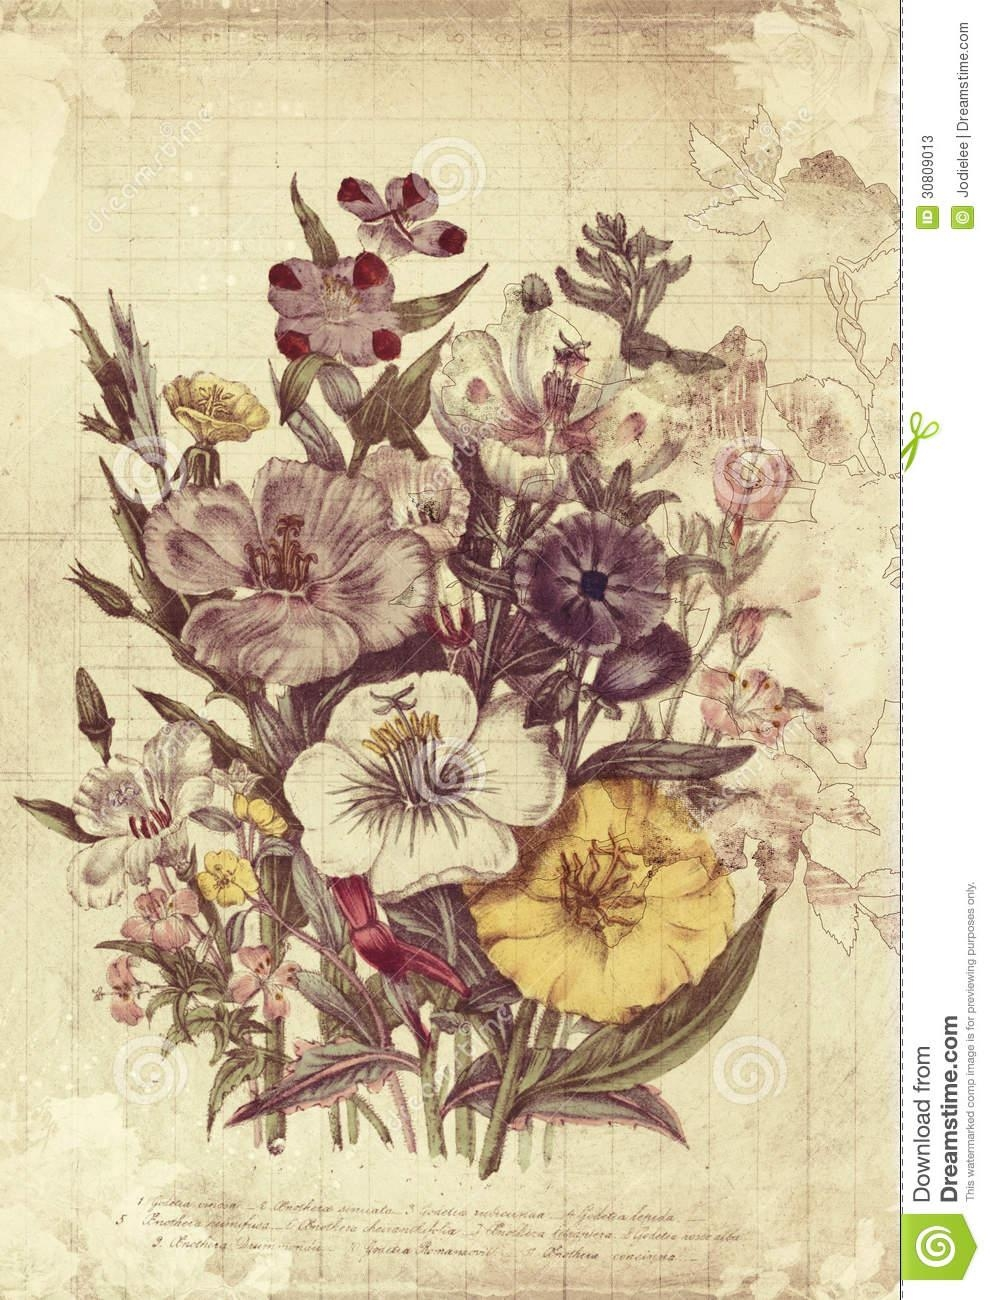 Flowers Botanical Vintage Style Wall Art With Textured Background Pertaining To Vintage Style Wall Art (View 3 of 20)